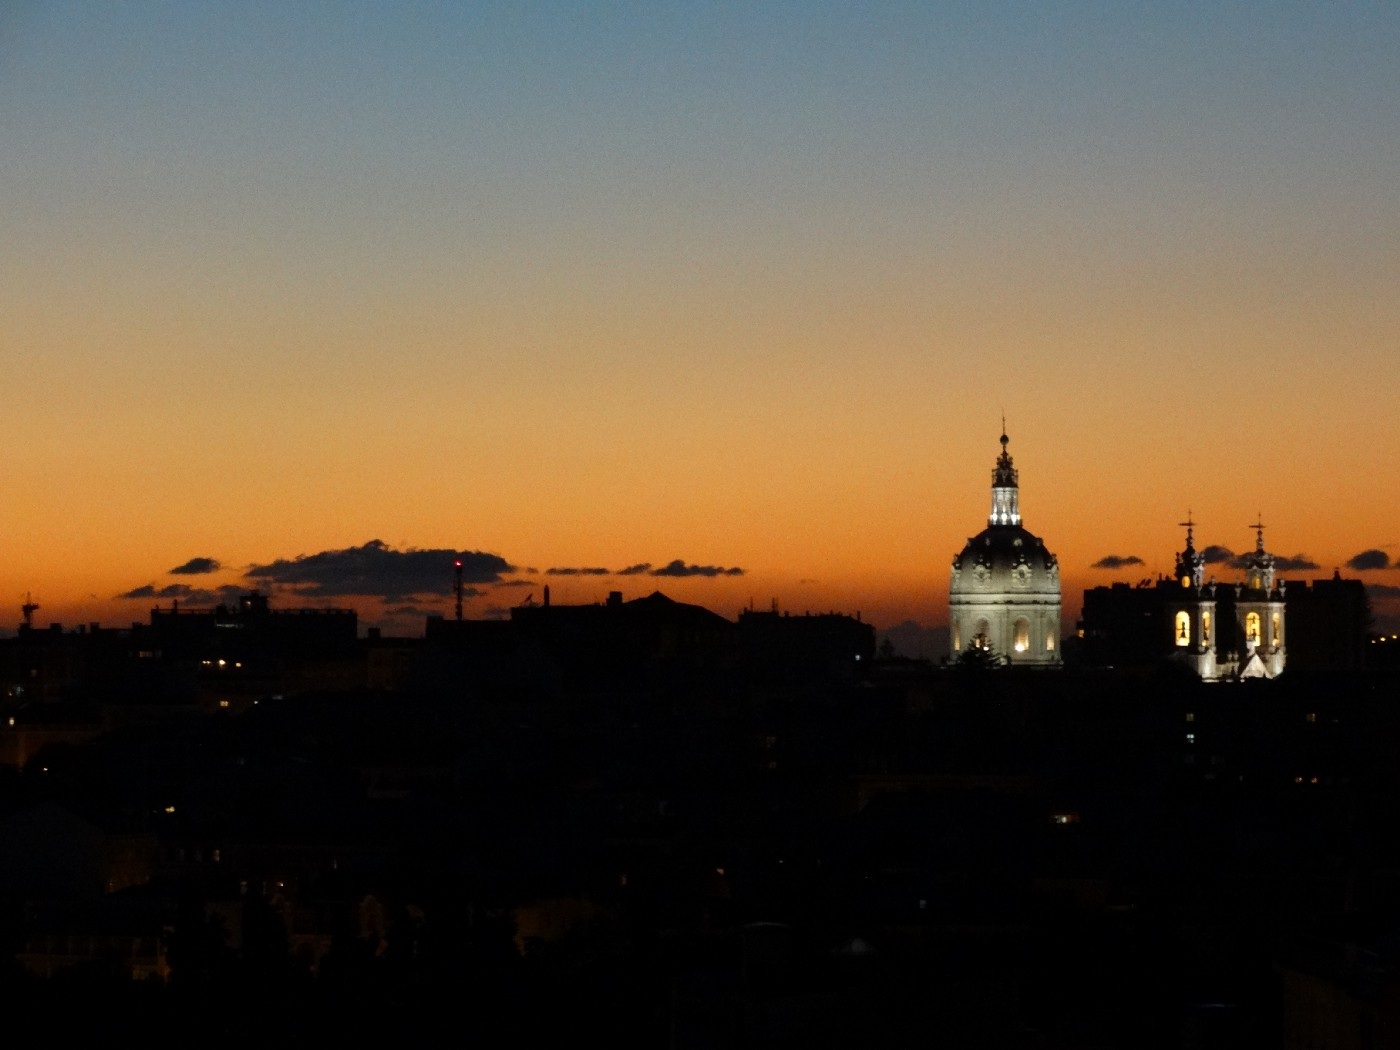 A cathedral dome illuminated on the dark skyline at sunset.